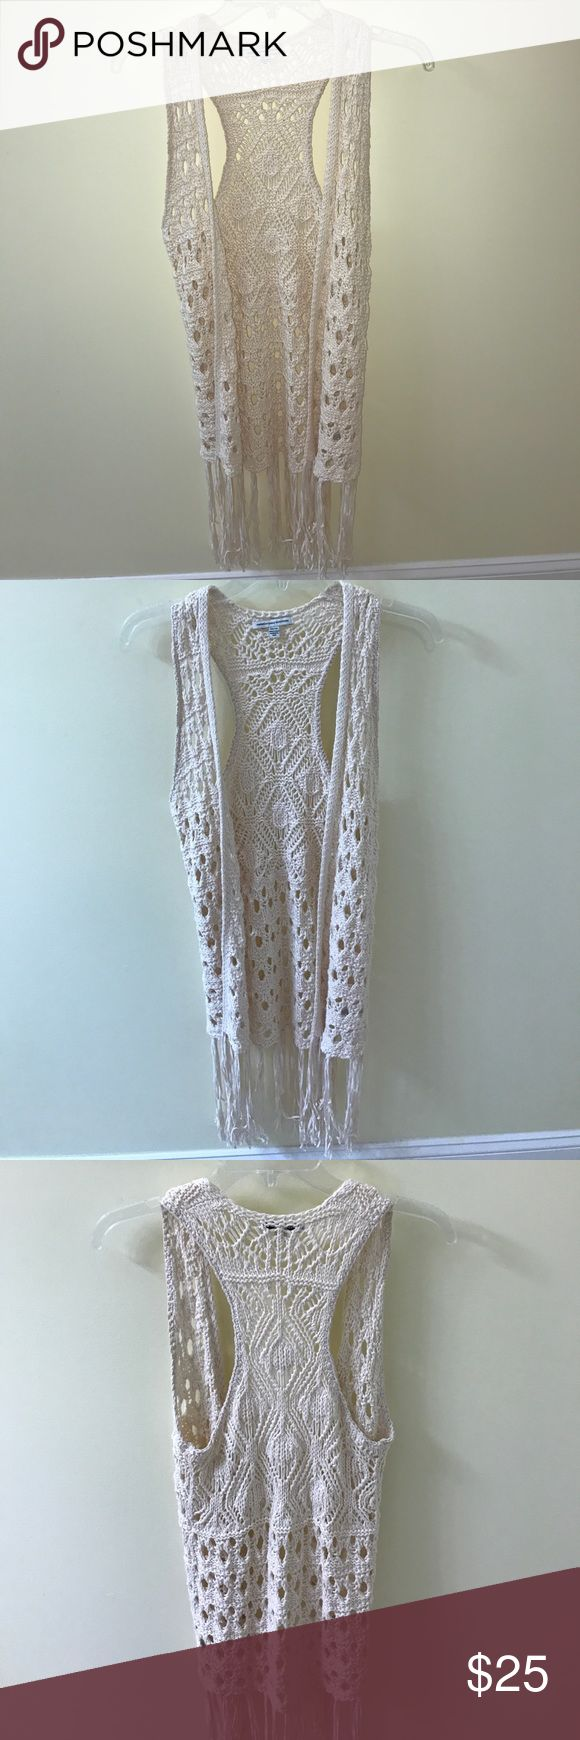 AEO crochet fringe cardigan AEO cream-colored crochet fringe sleeveless cardigan. Never worn. Perfect quality! Could also be worn as a swimsuit cover up! Size XS American Eagle Outfitters Tops